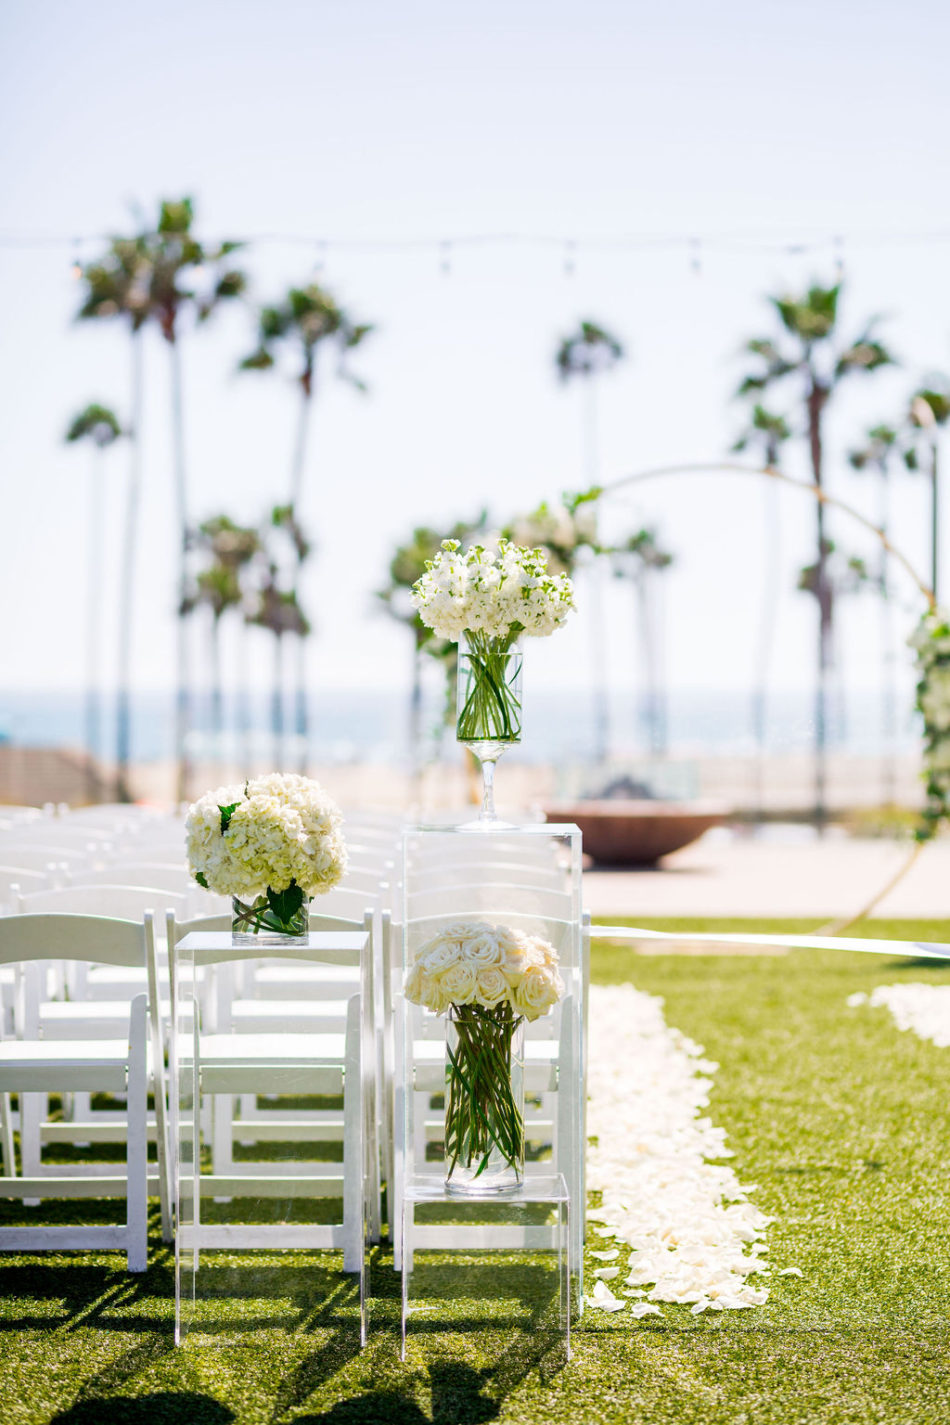 white ceremony florals, petalfilled aisle, ethereal white wedding, florist, wedding florist, wedding flowers, orange county weddings, orange county wedding florist, orange county florist, orange county floral design, flowers by cina